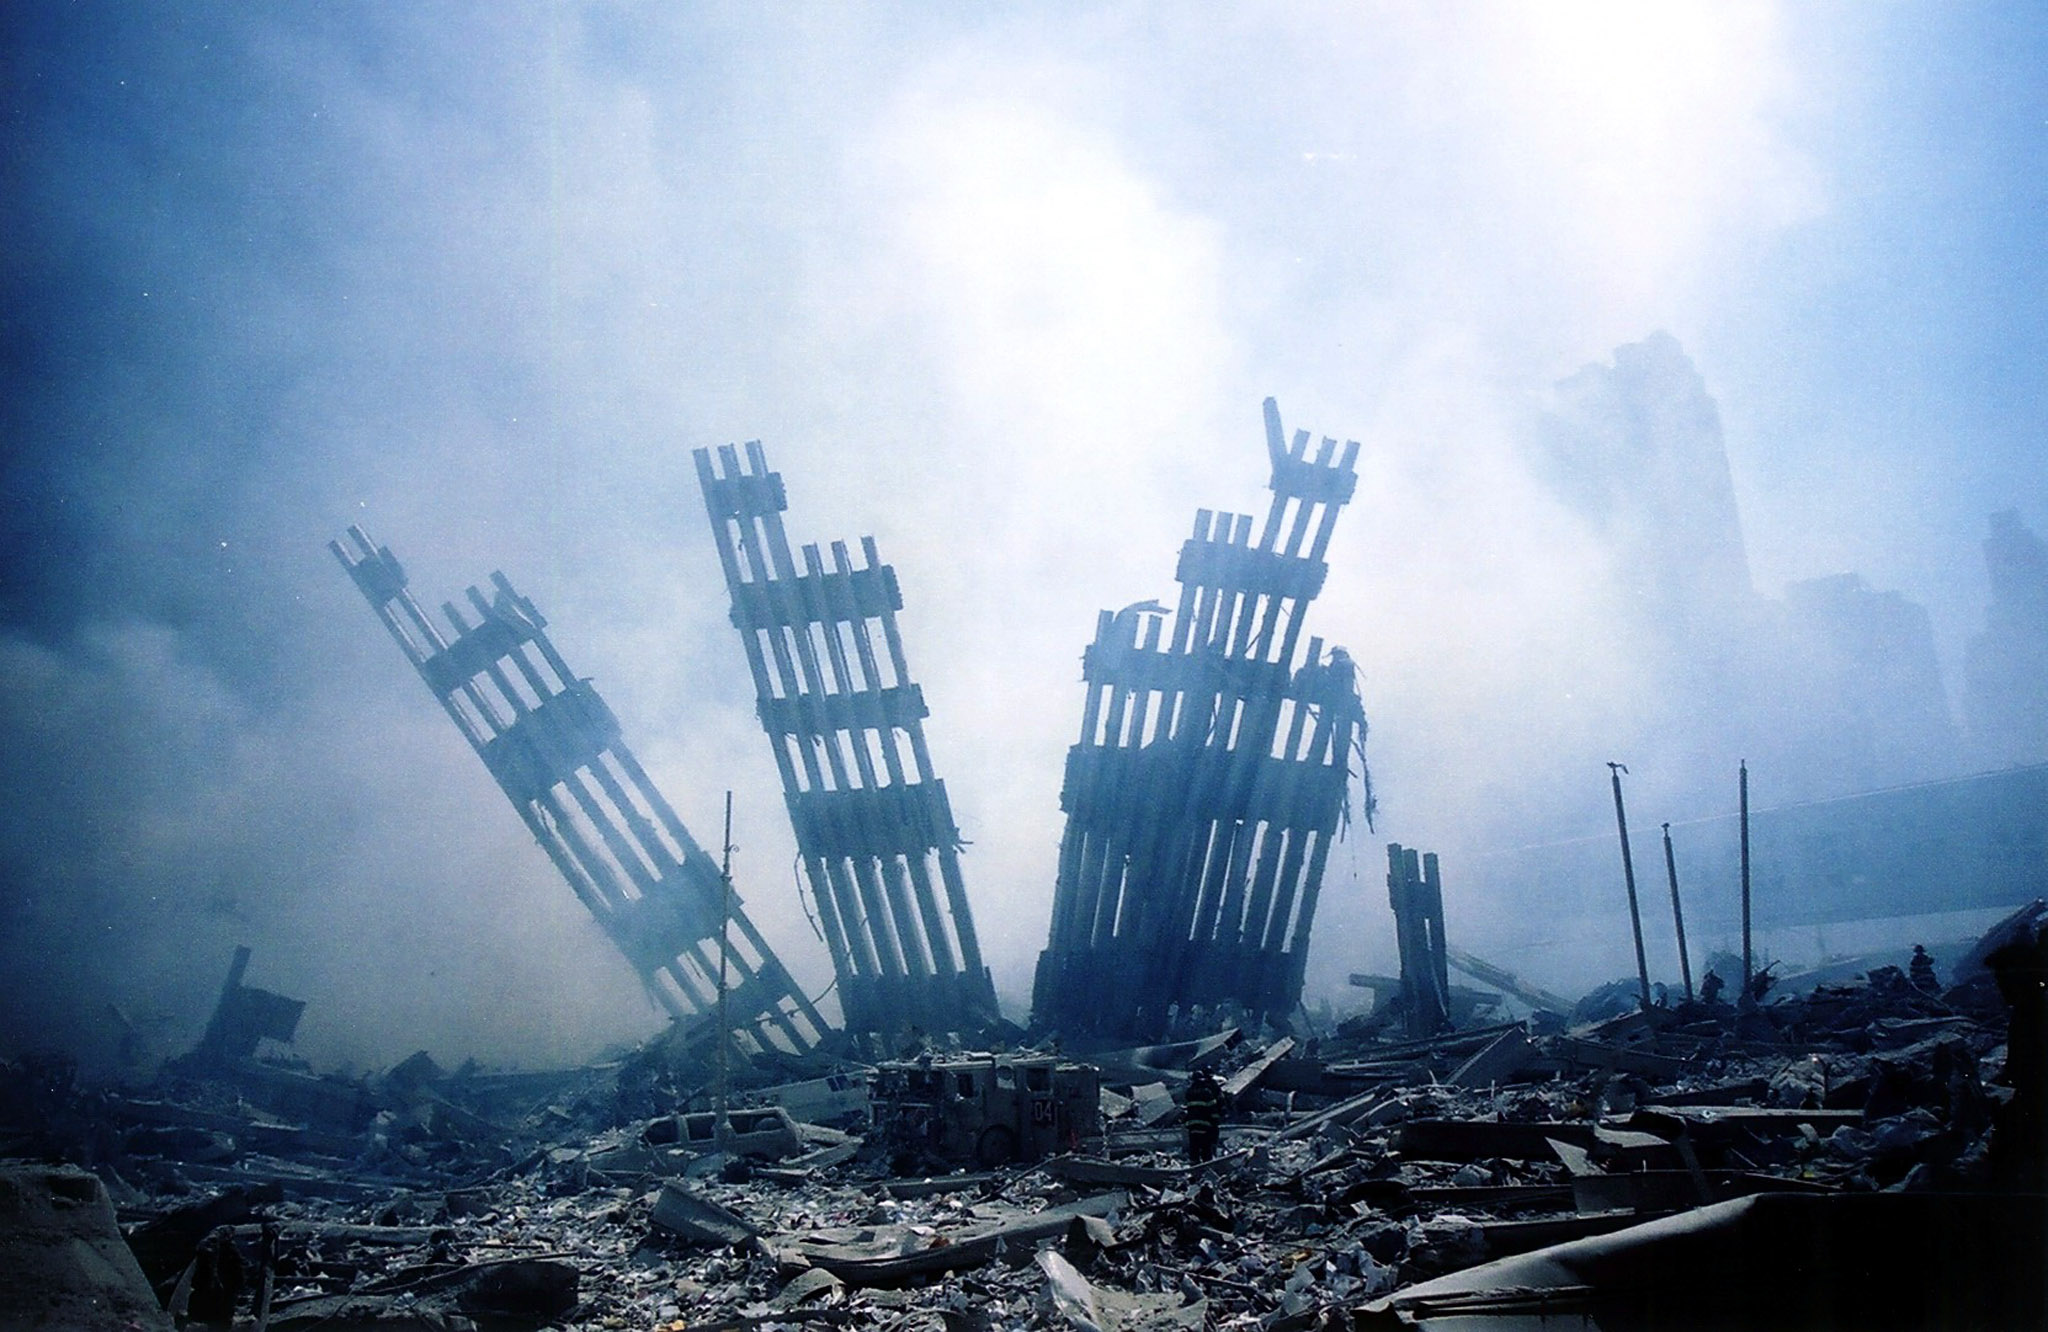 9/11 Commission heads issue security-gap warning